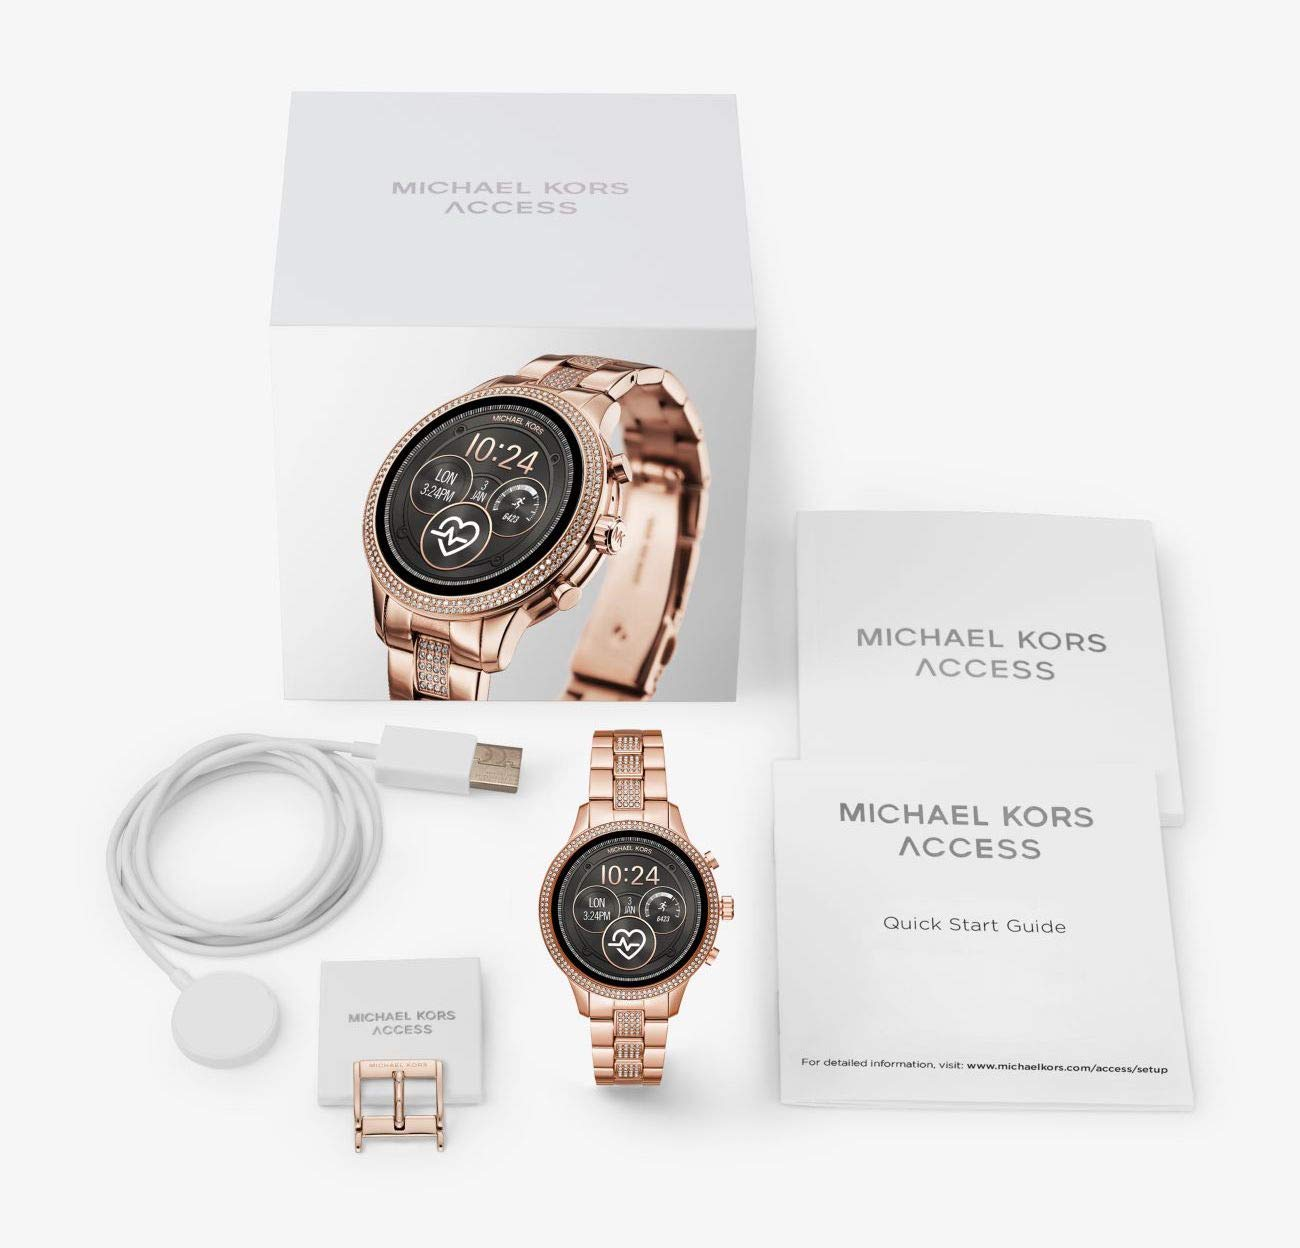 Michael Kors Access Runway Smartwatch – Powered with Wear OS by Google with Heart Rate, GPS, NFC, and Smartphone Notifications